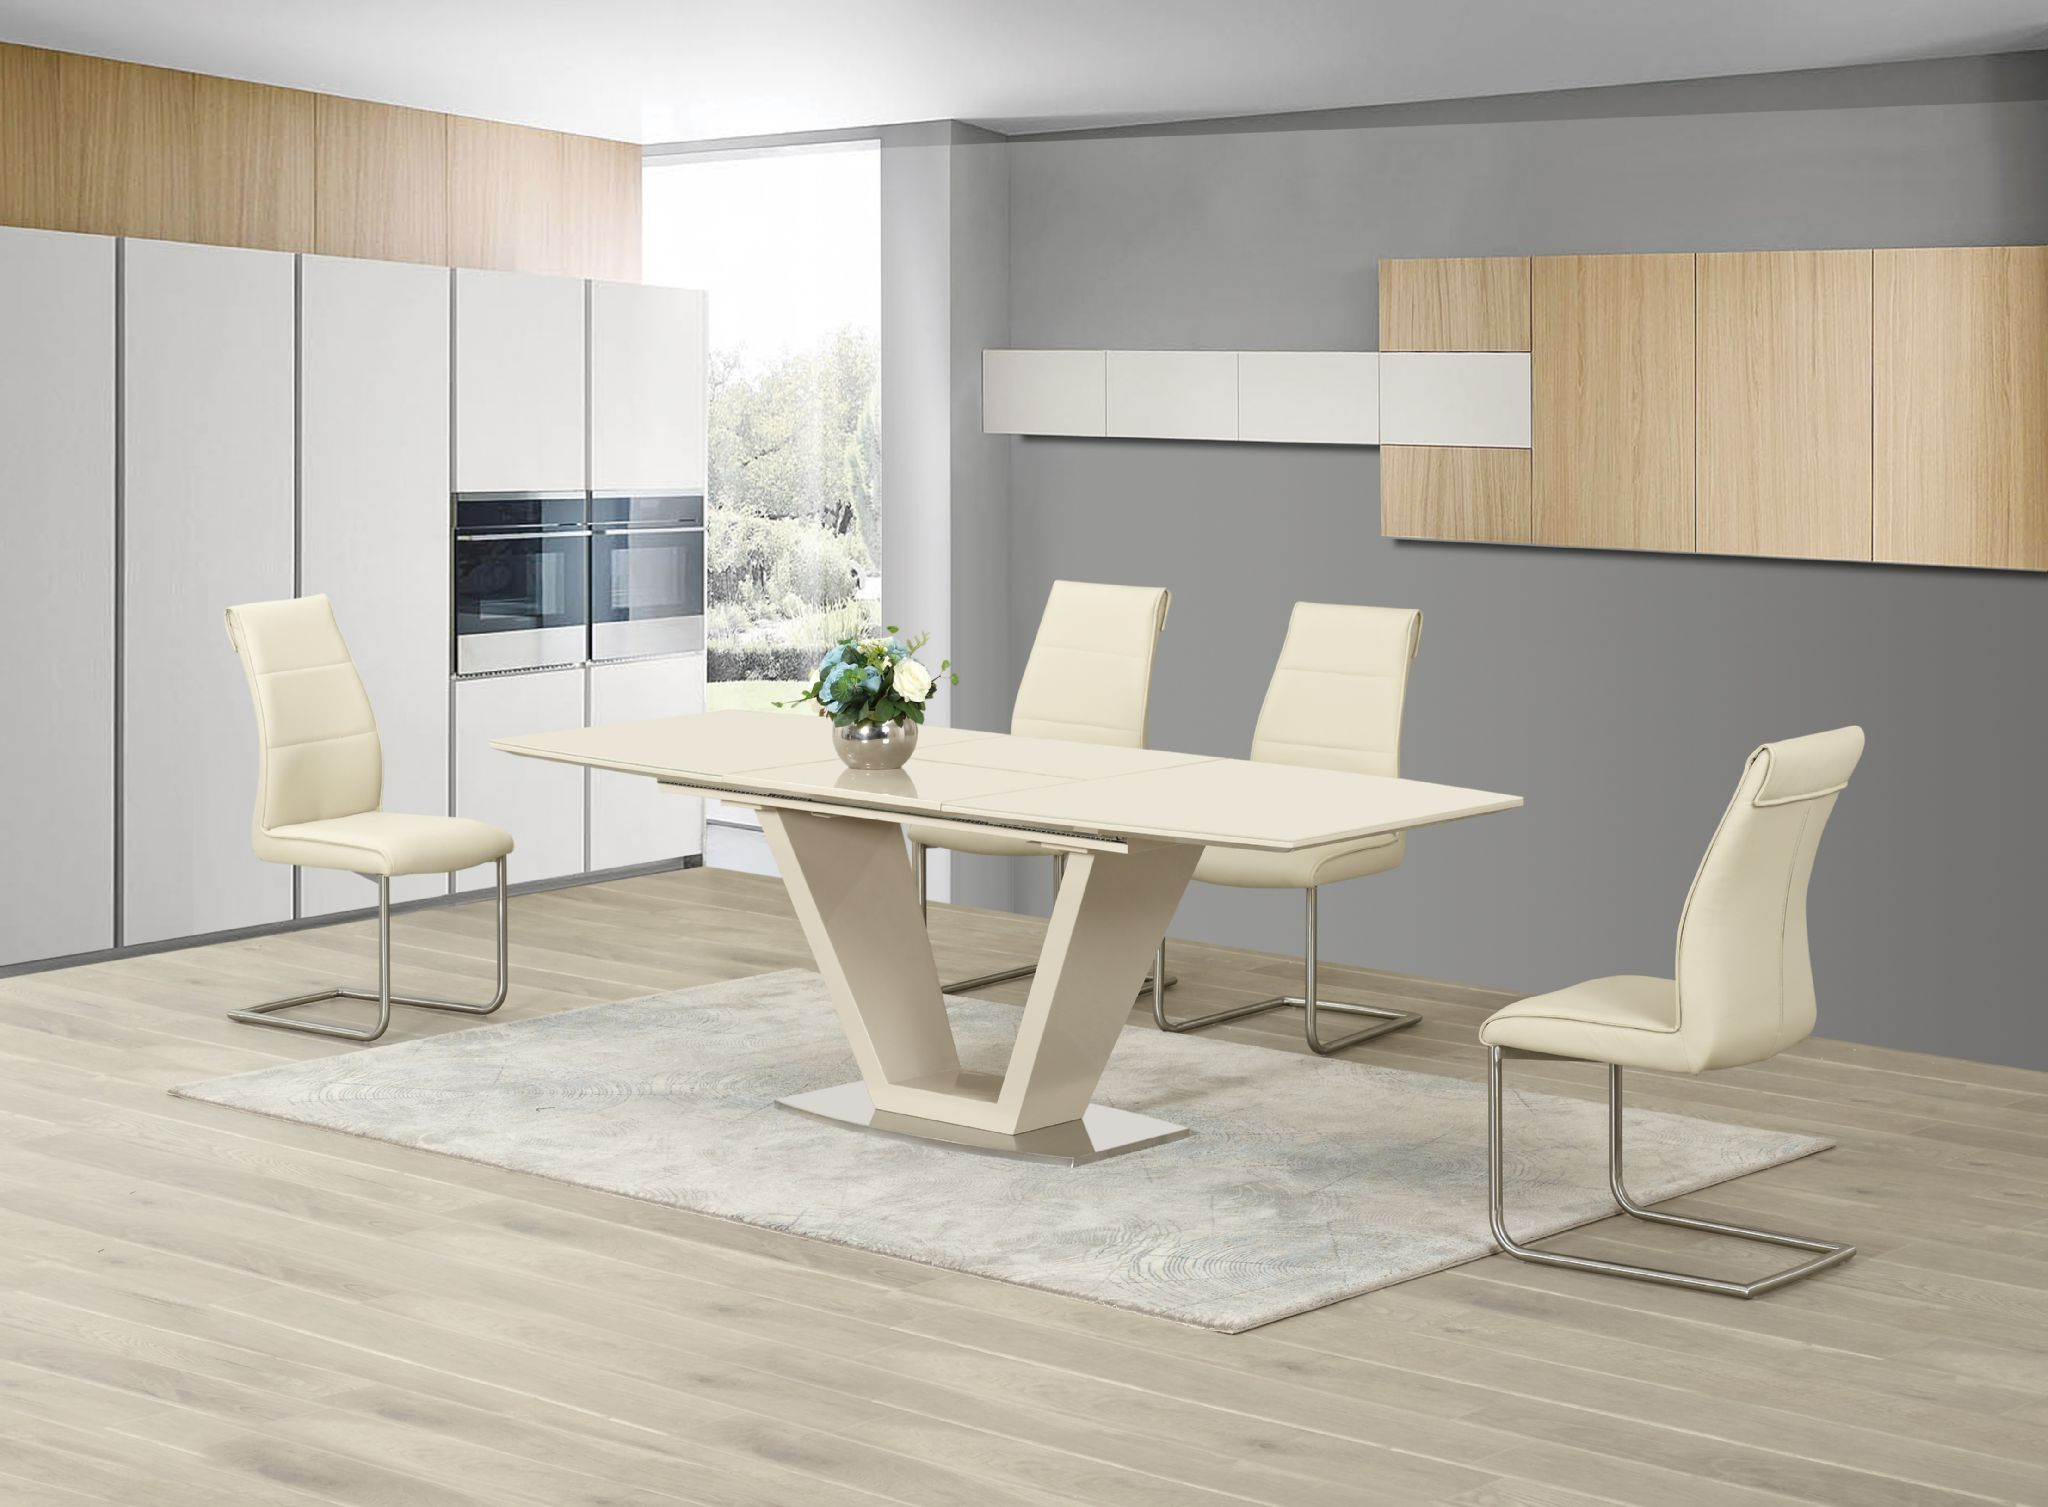 Favorite Floris Cream Extending Dining Table High Gloss In Extension Dining Tables (View 14 of 25)